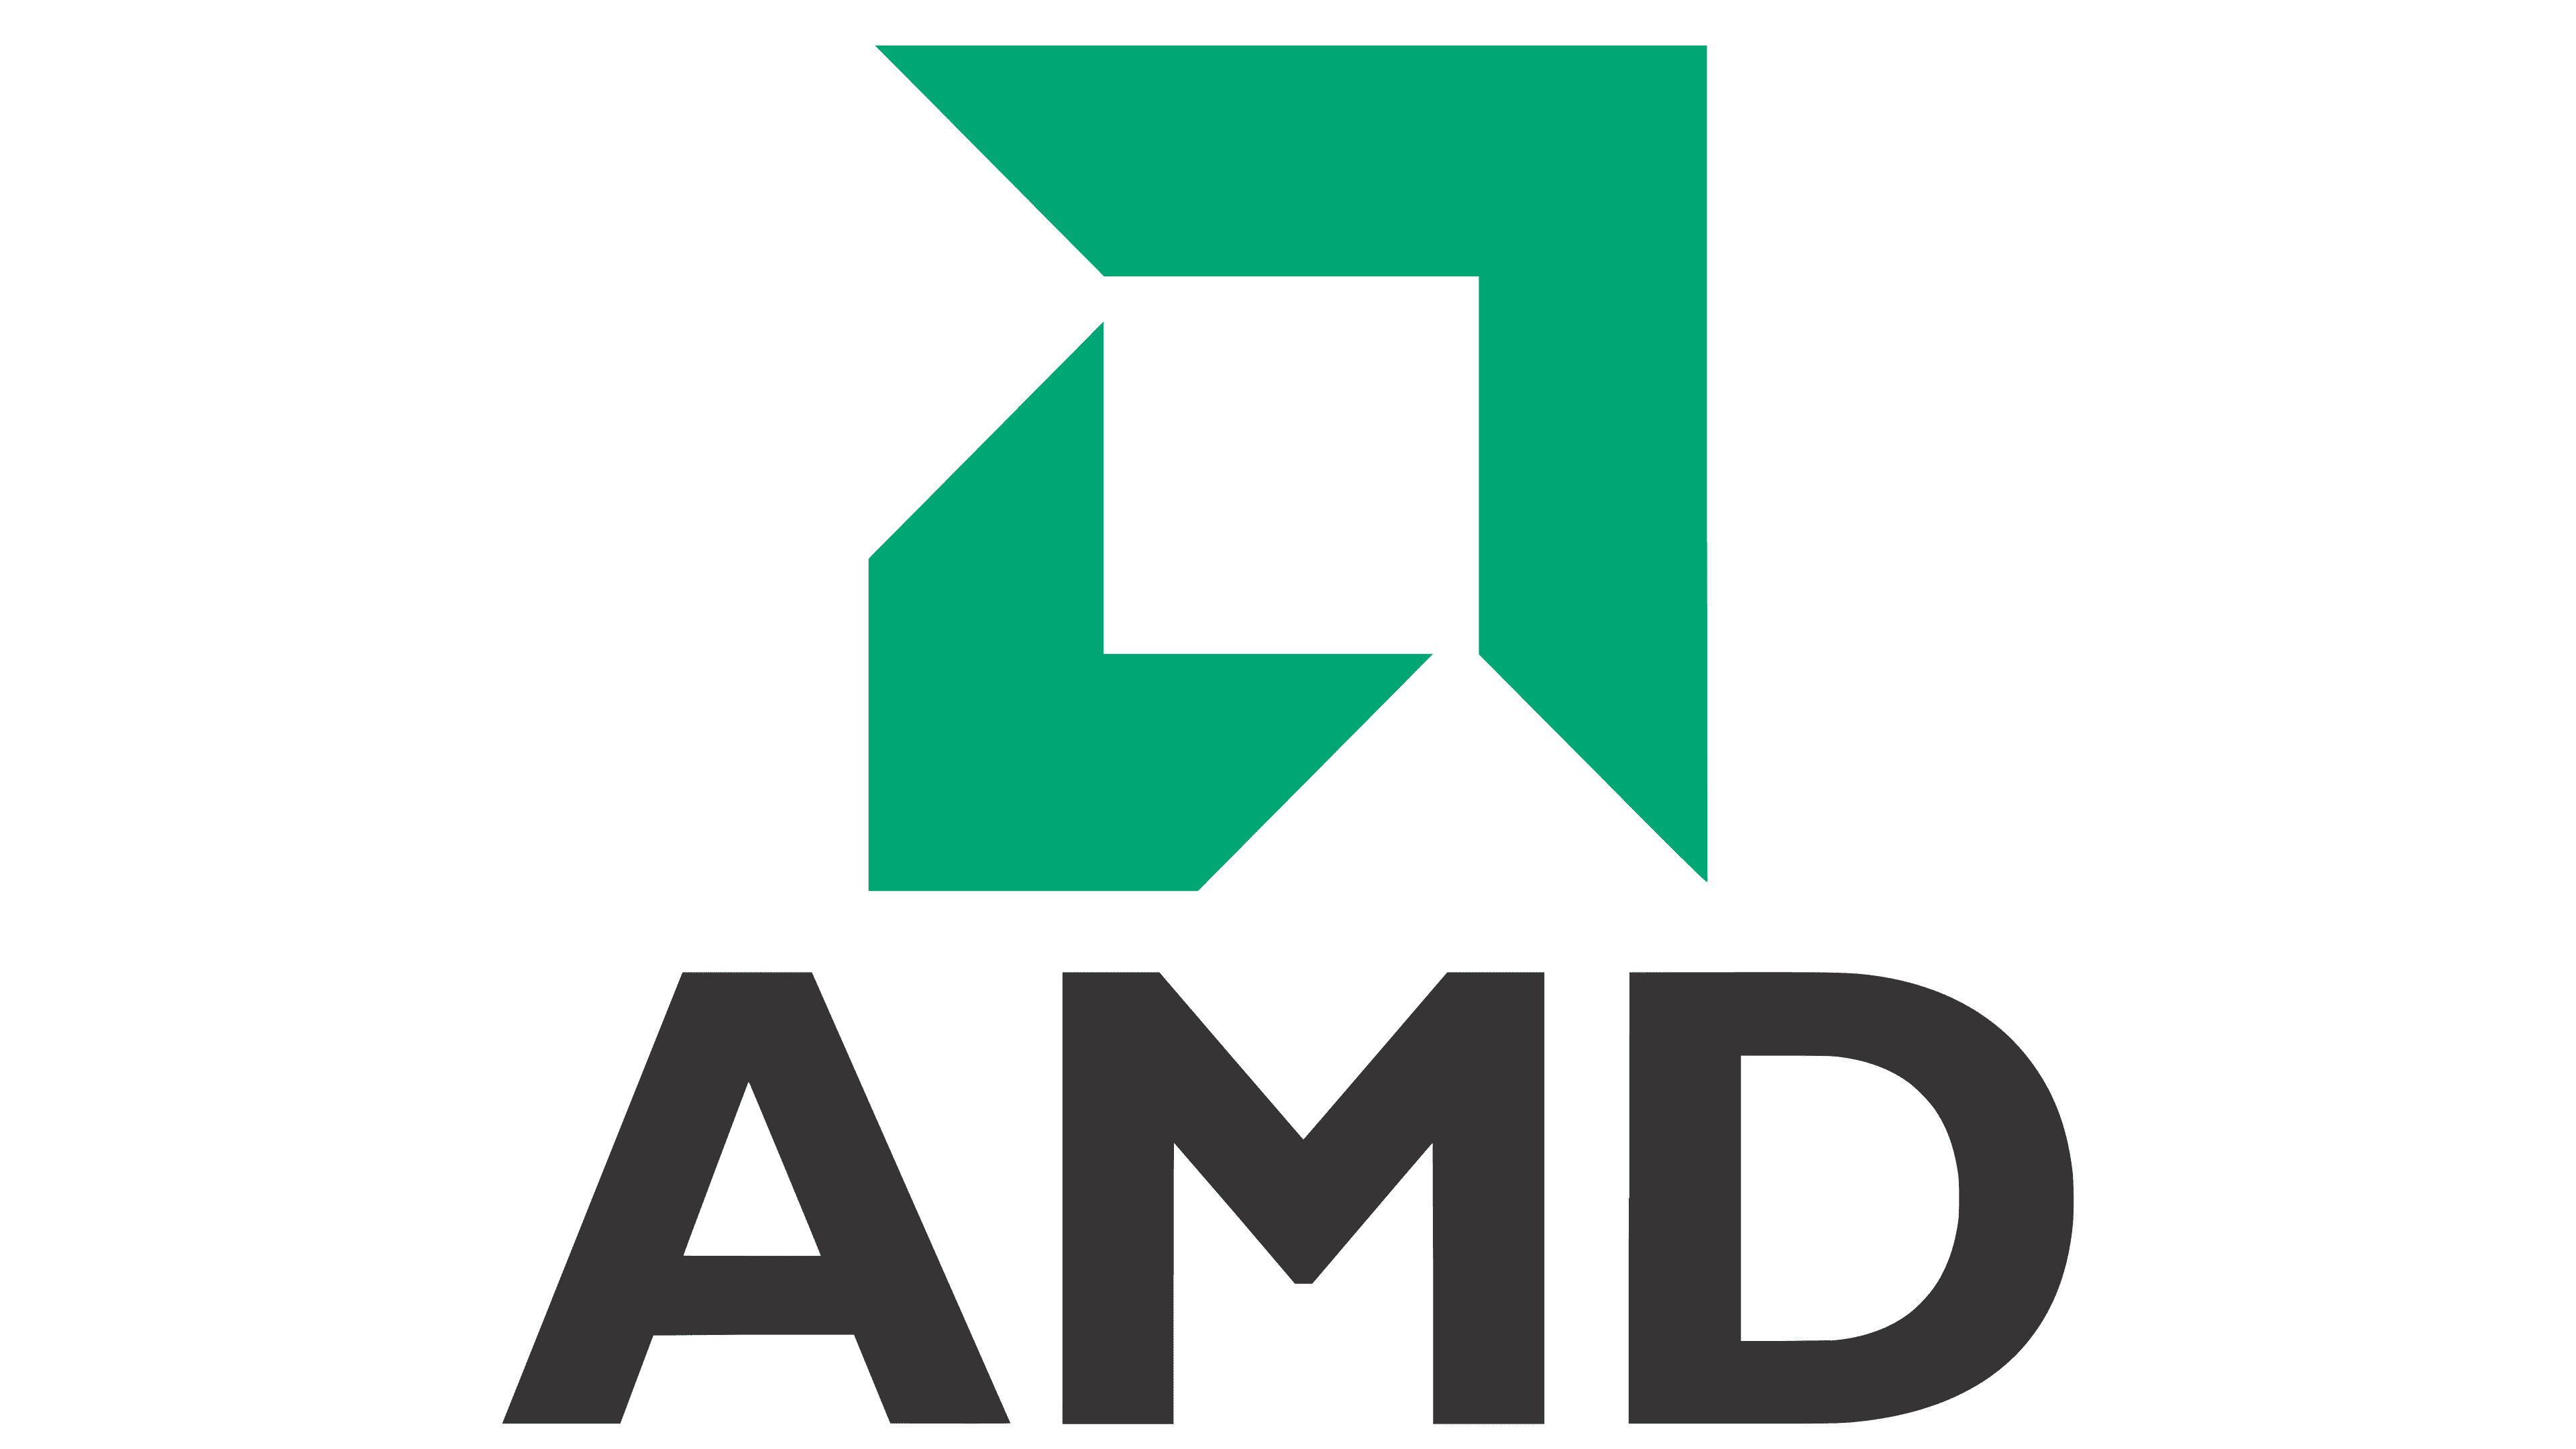 Amd Logo History The Most Famous Brands And Company Logos In The World